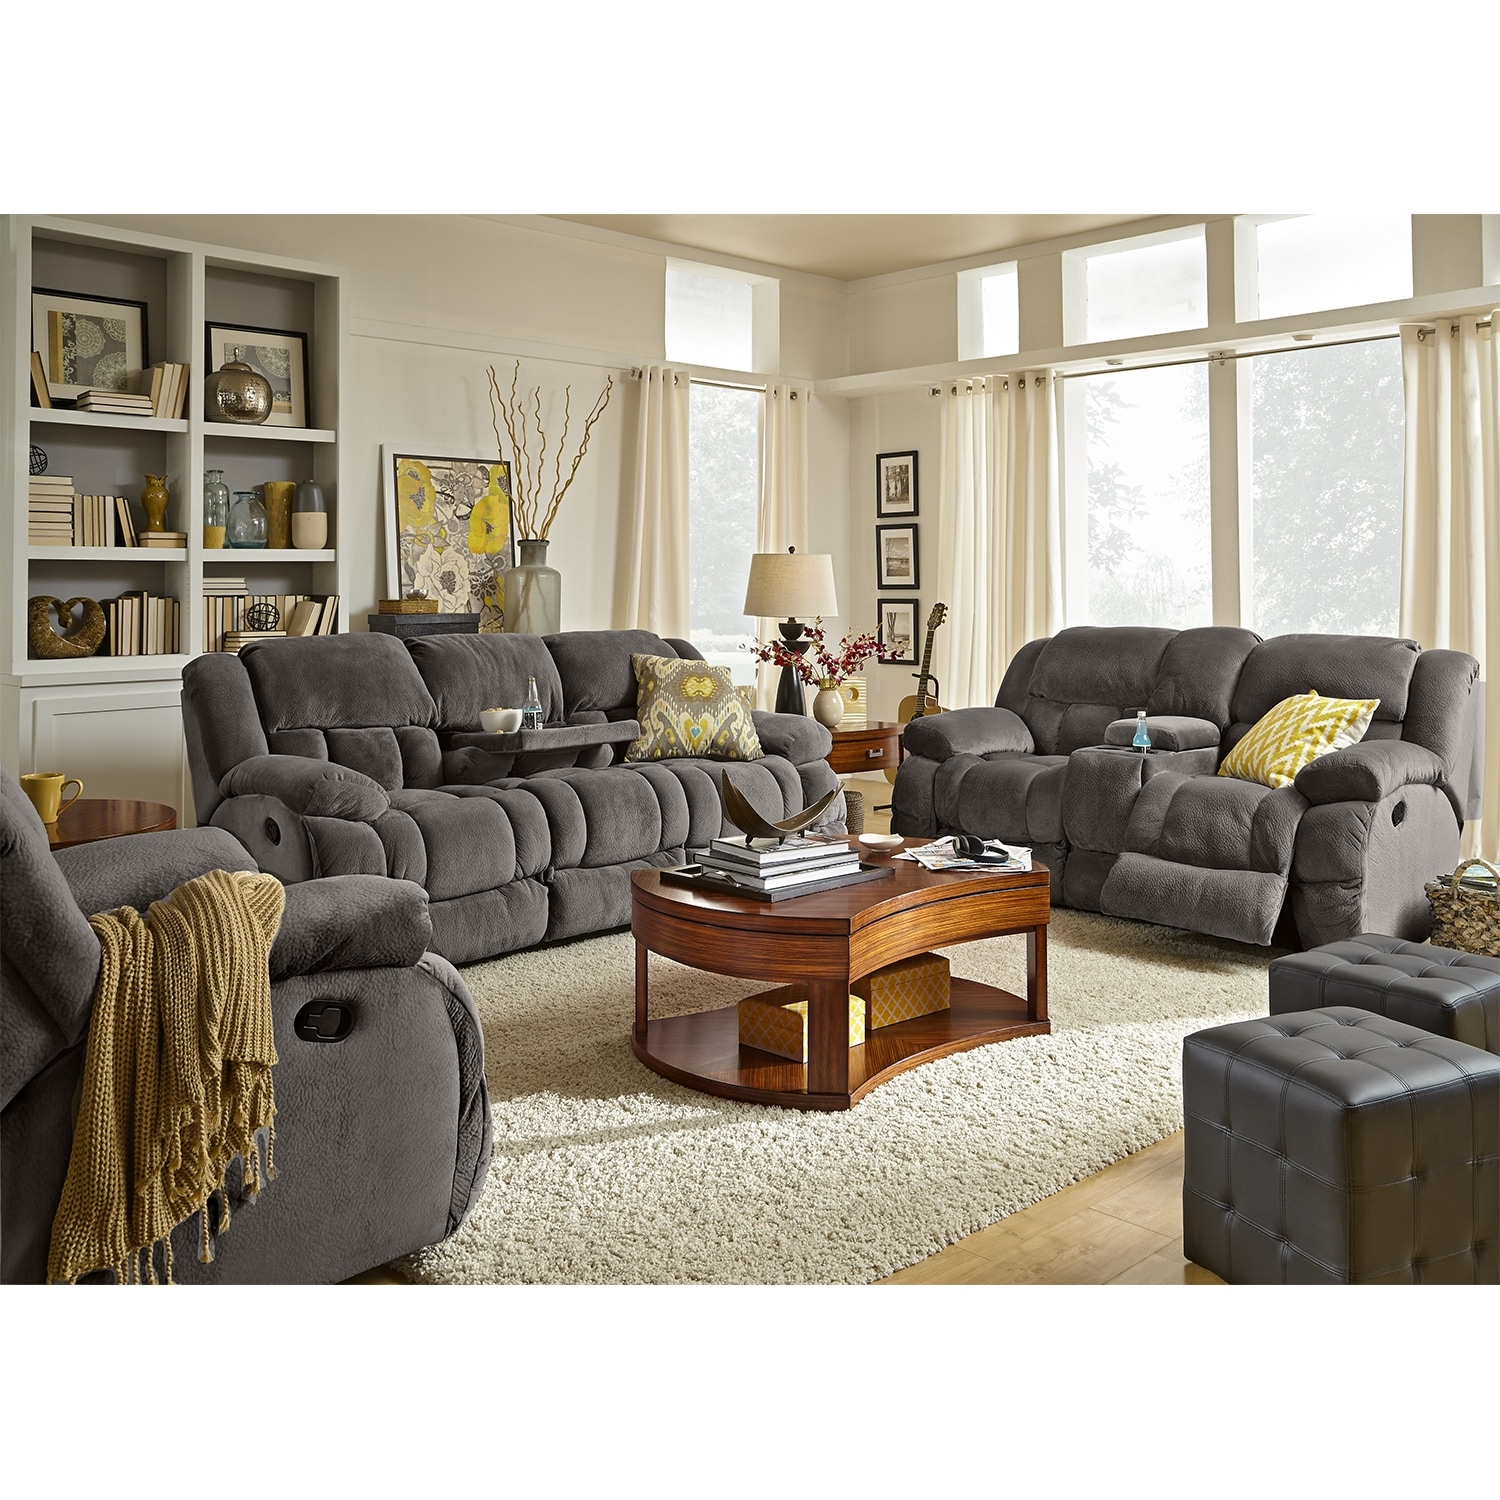 Park City Dual Reclining Sofa Gray Value City Furniture